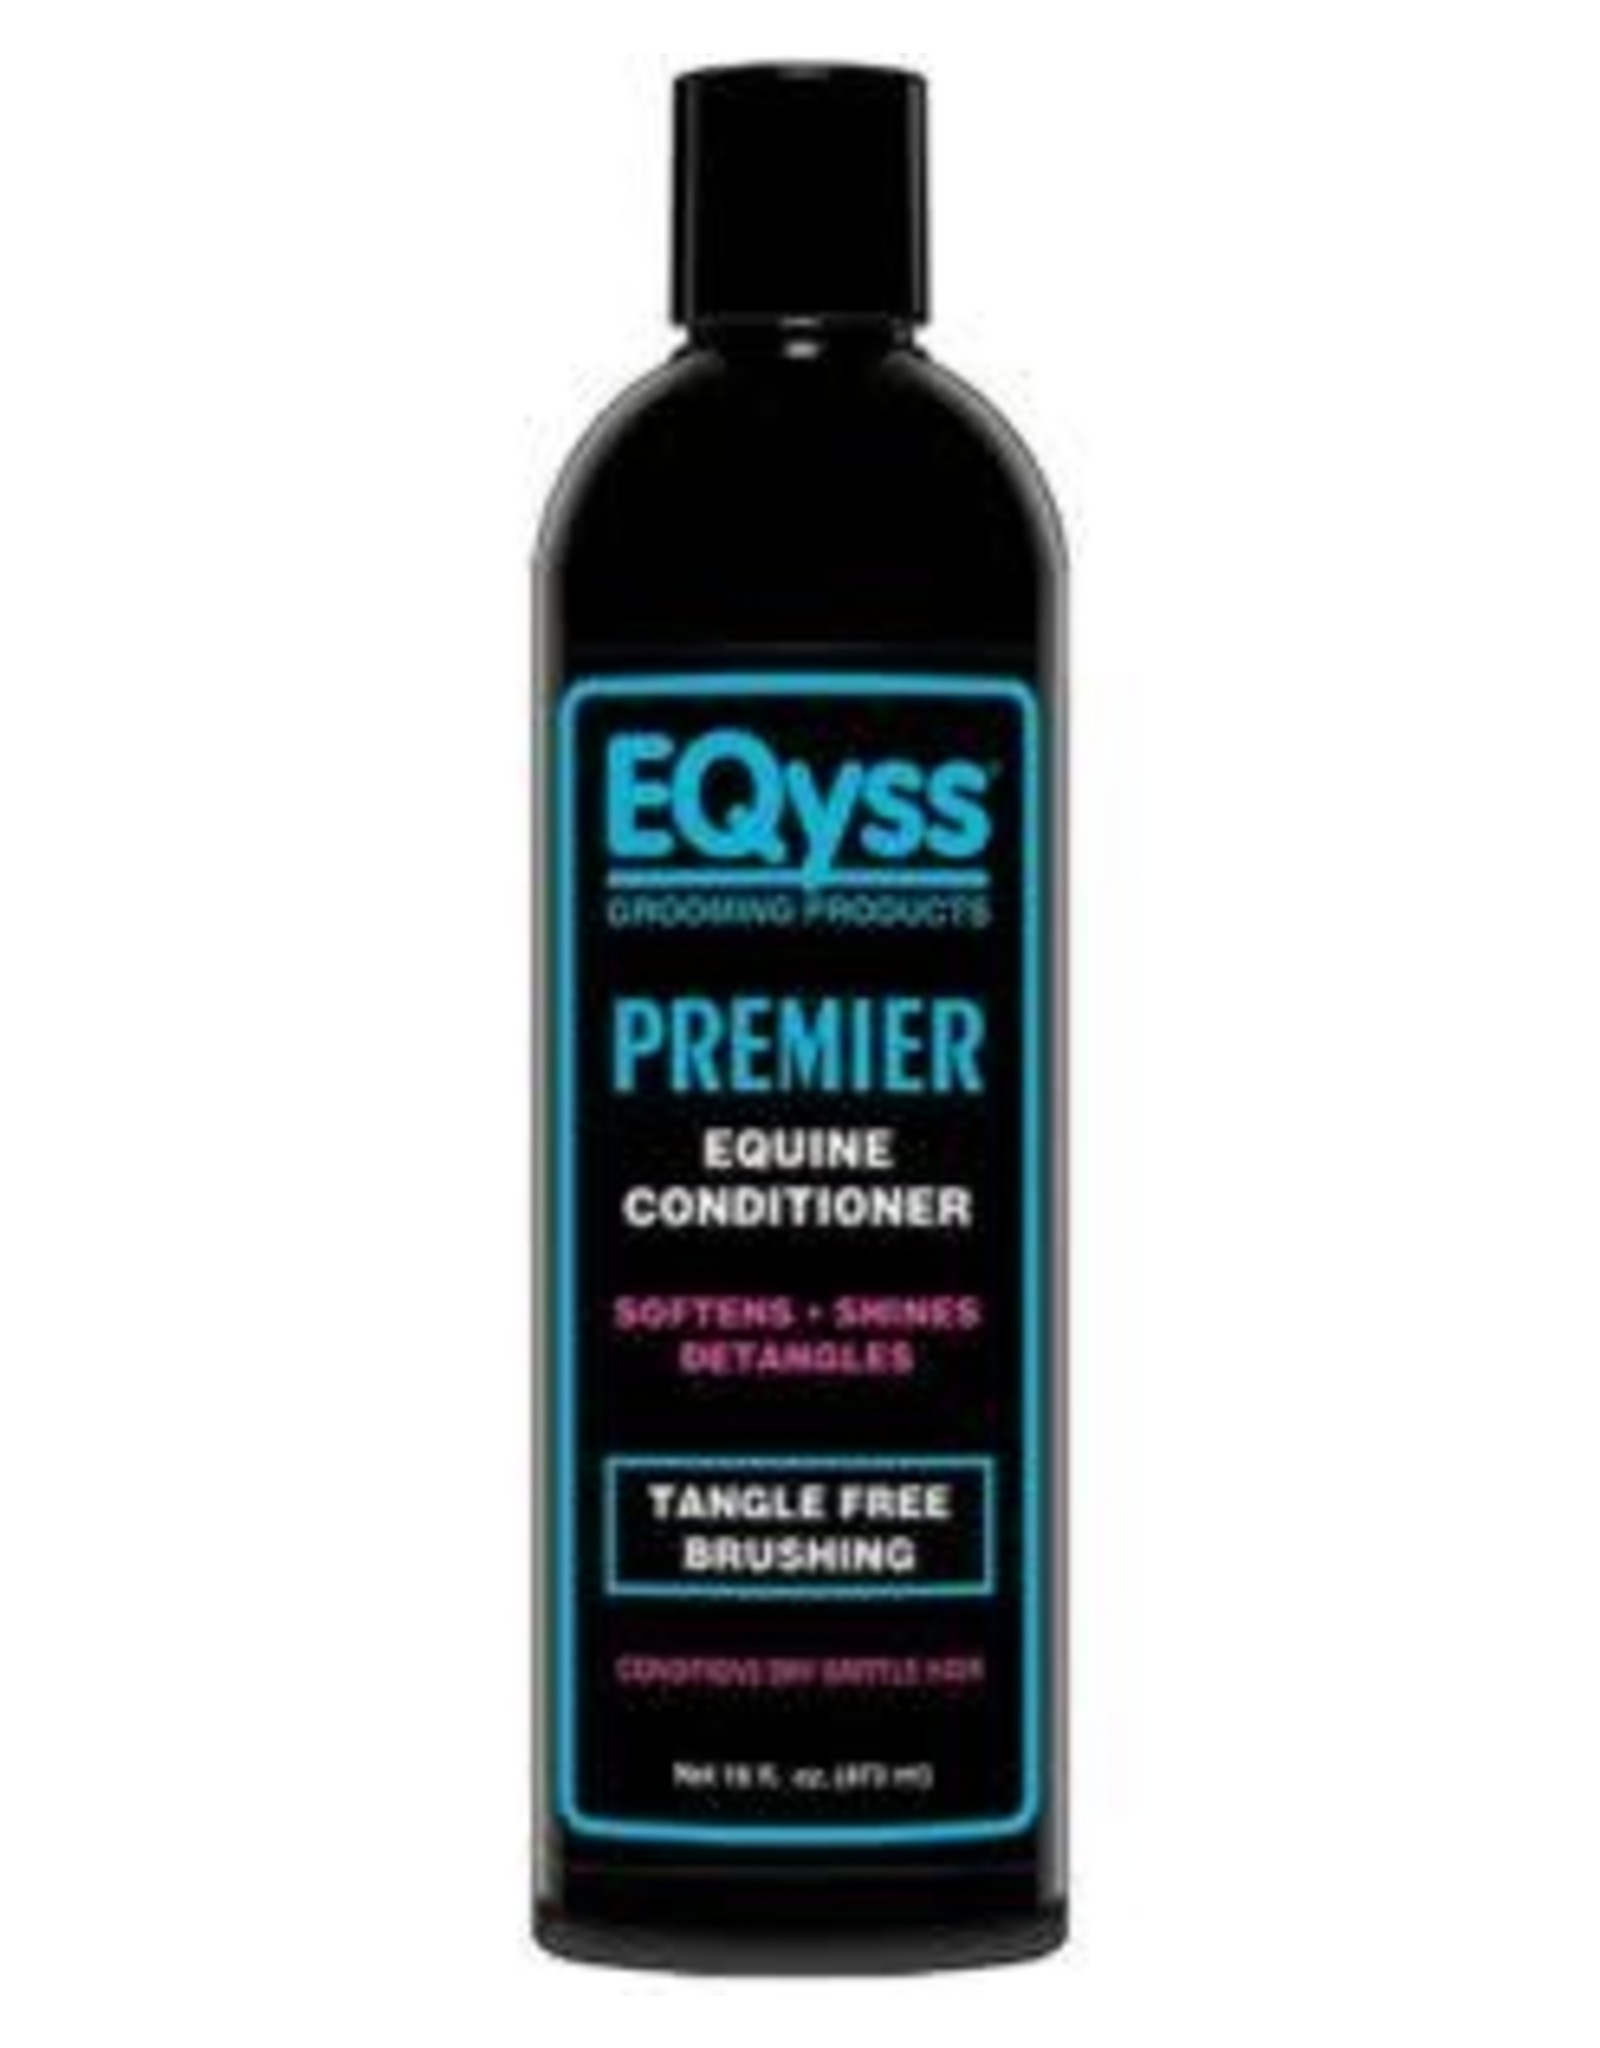 Eqyss Premier Equine Conditioner